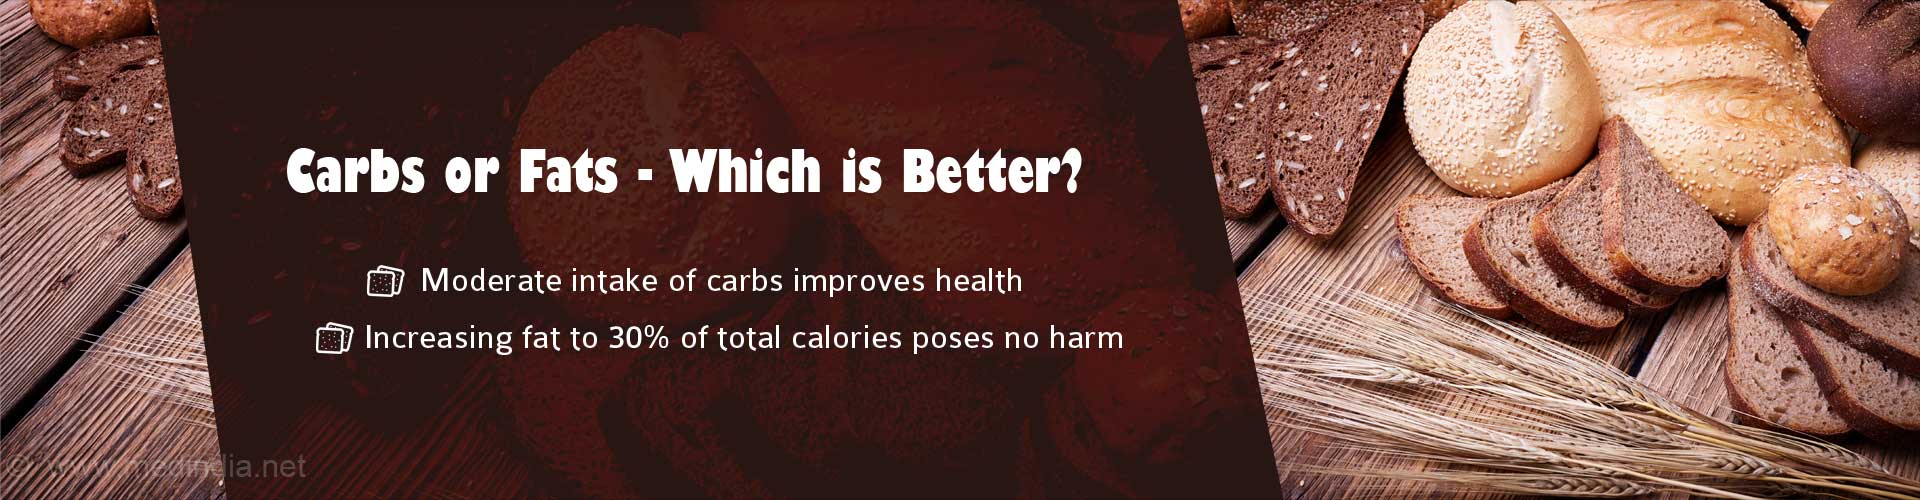 Cut Down On Carbs and Not Fats For Longer Life